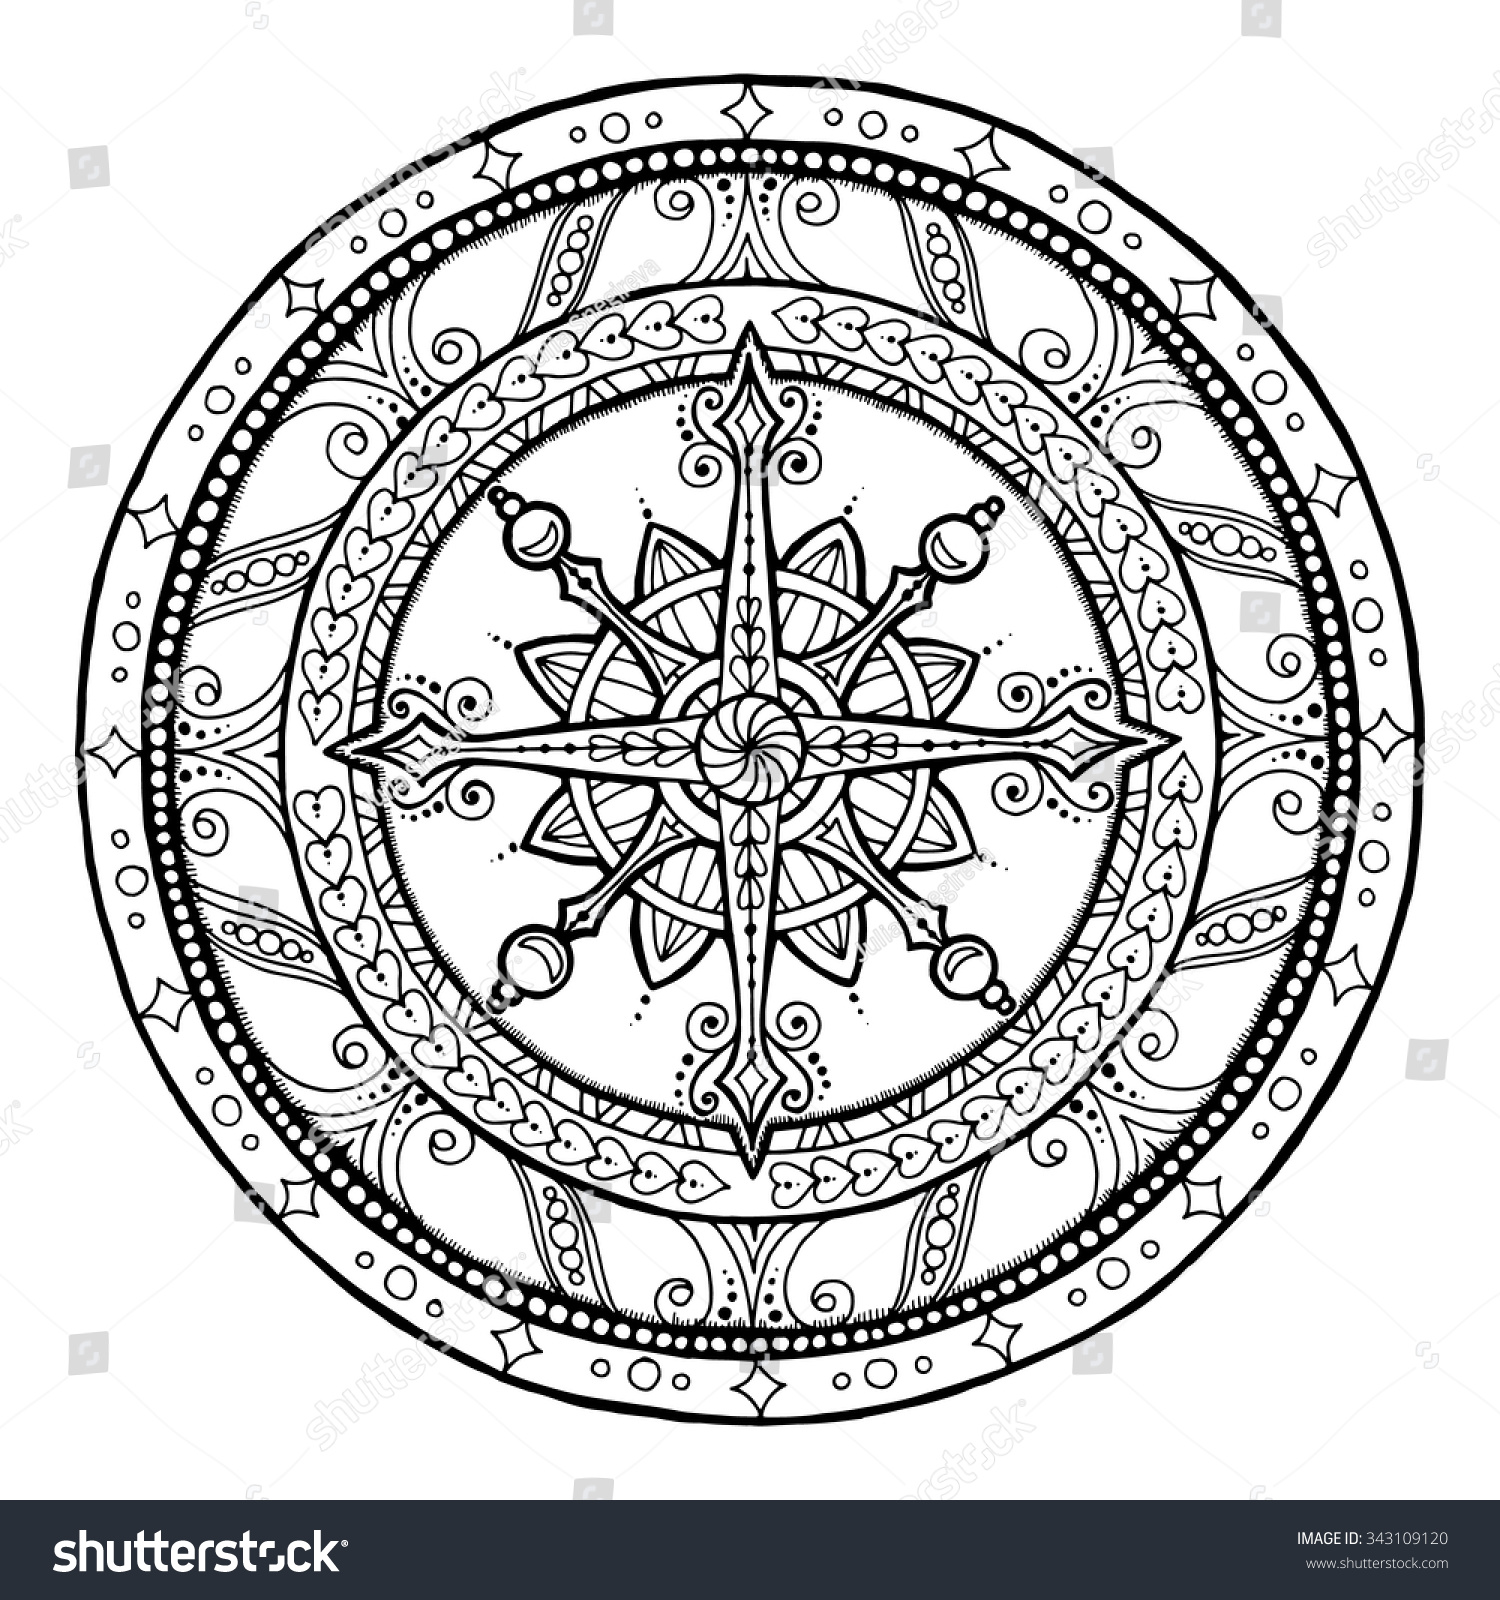 Coloring book snowflake - Doodle Snowflake On Ethnic Circle Ornament Hand Drawn Art Winter Mandala